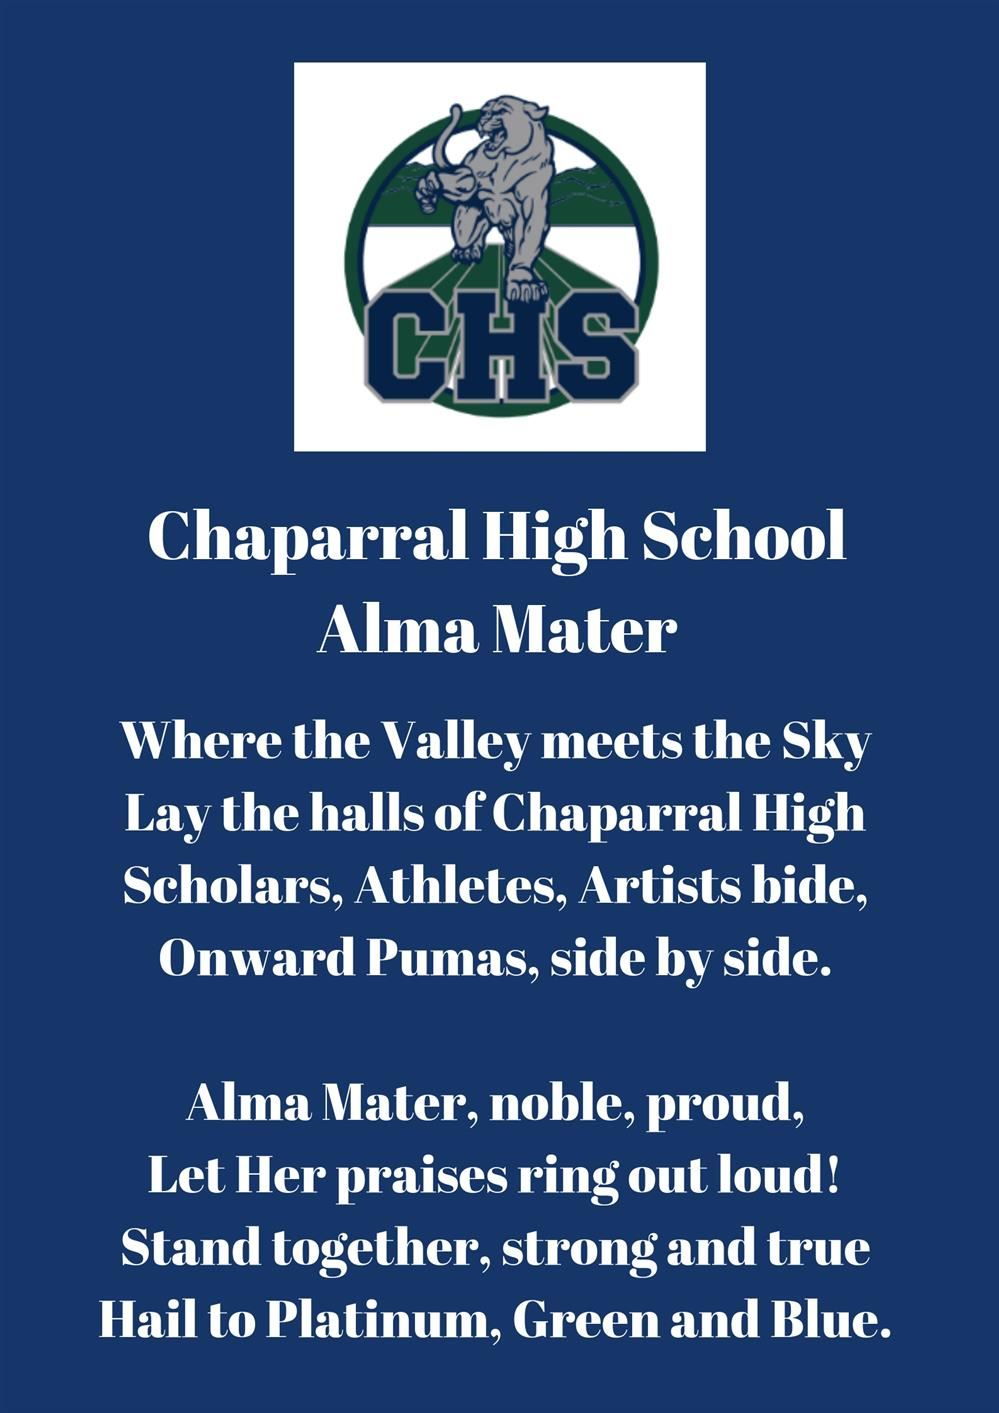 Chaparral High School Alma Mater  Where the Valley meets the Sky  Lay the halls of Chaparral High  Scholars, Athletes, Artist